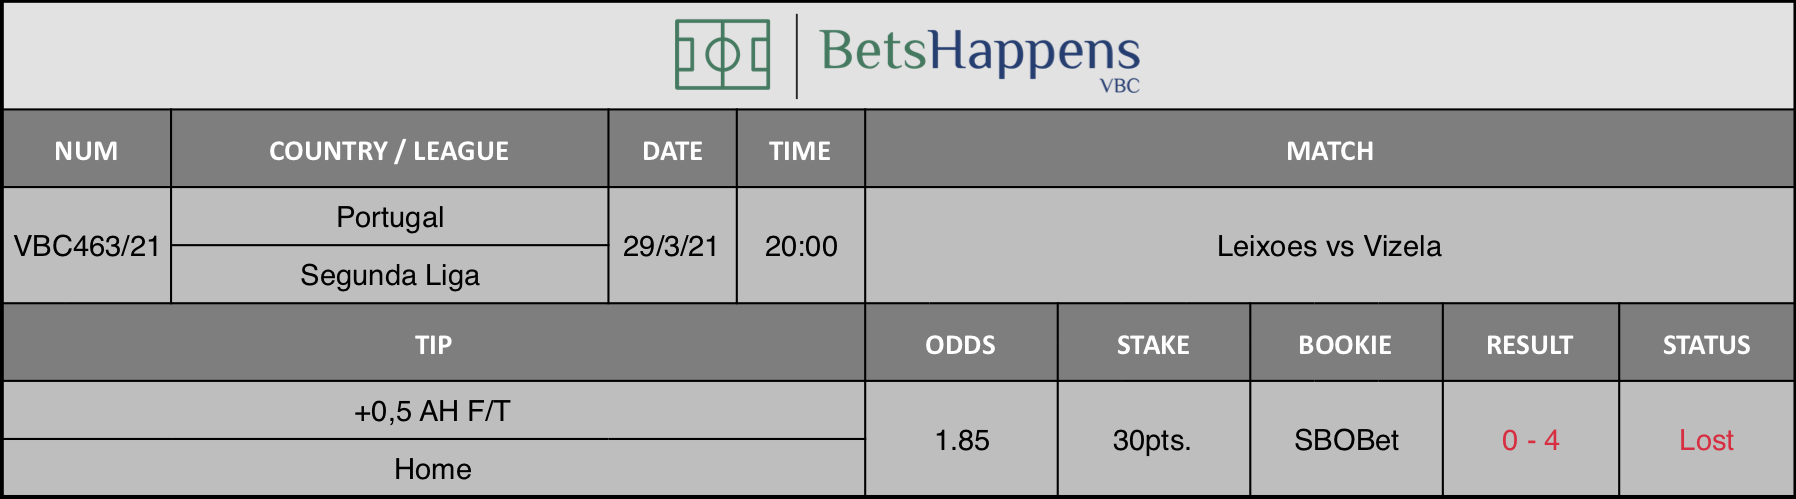 Results of our tip for the Leixoes vs Vizela match where +0,5 AH F/T Home is recommended.